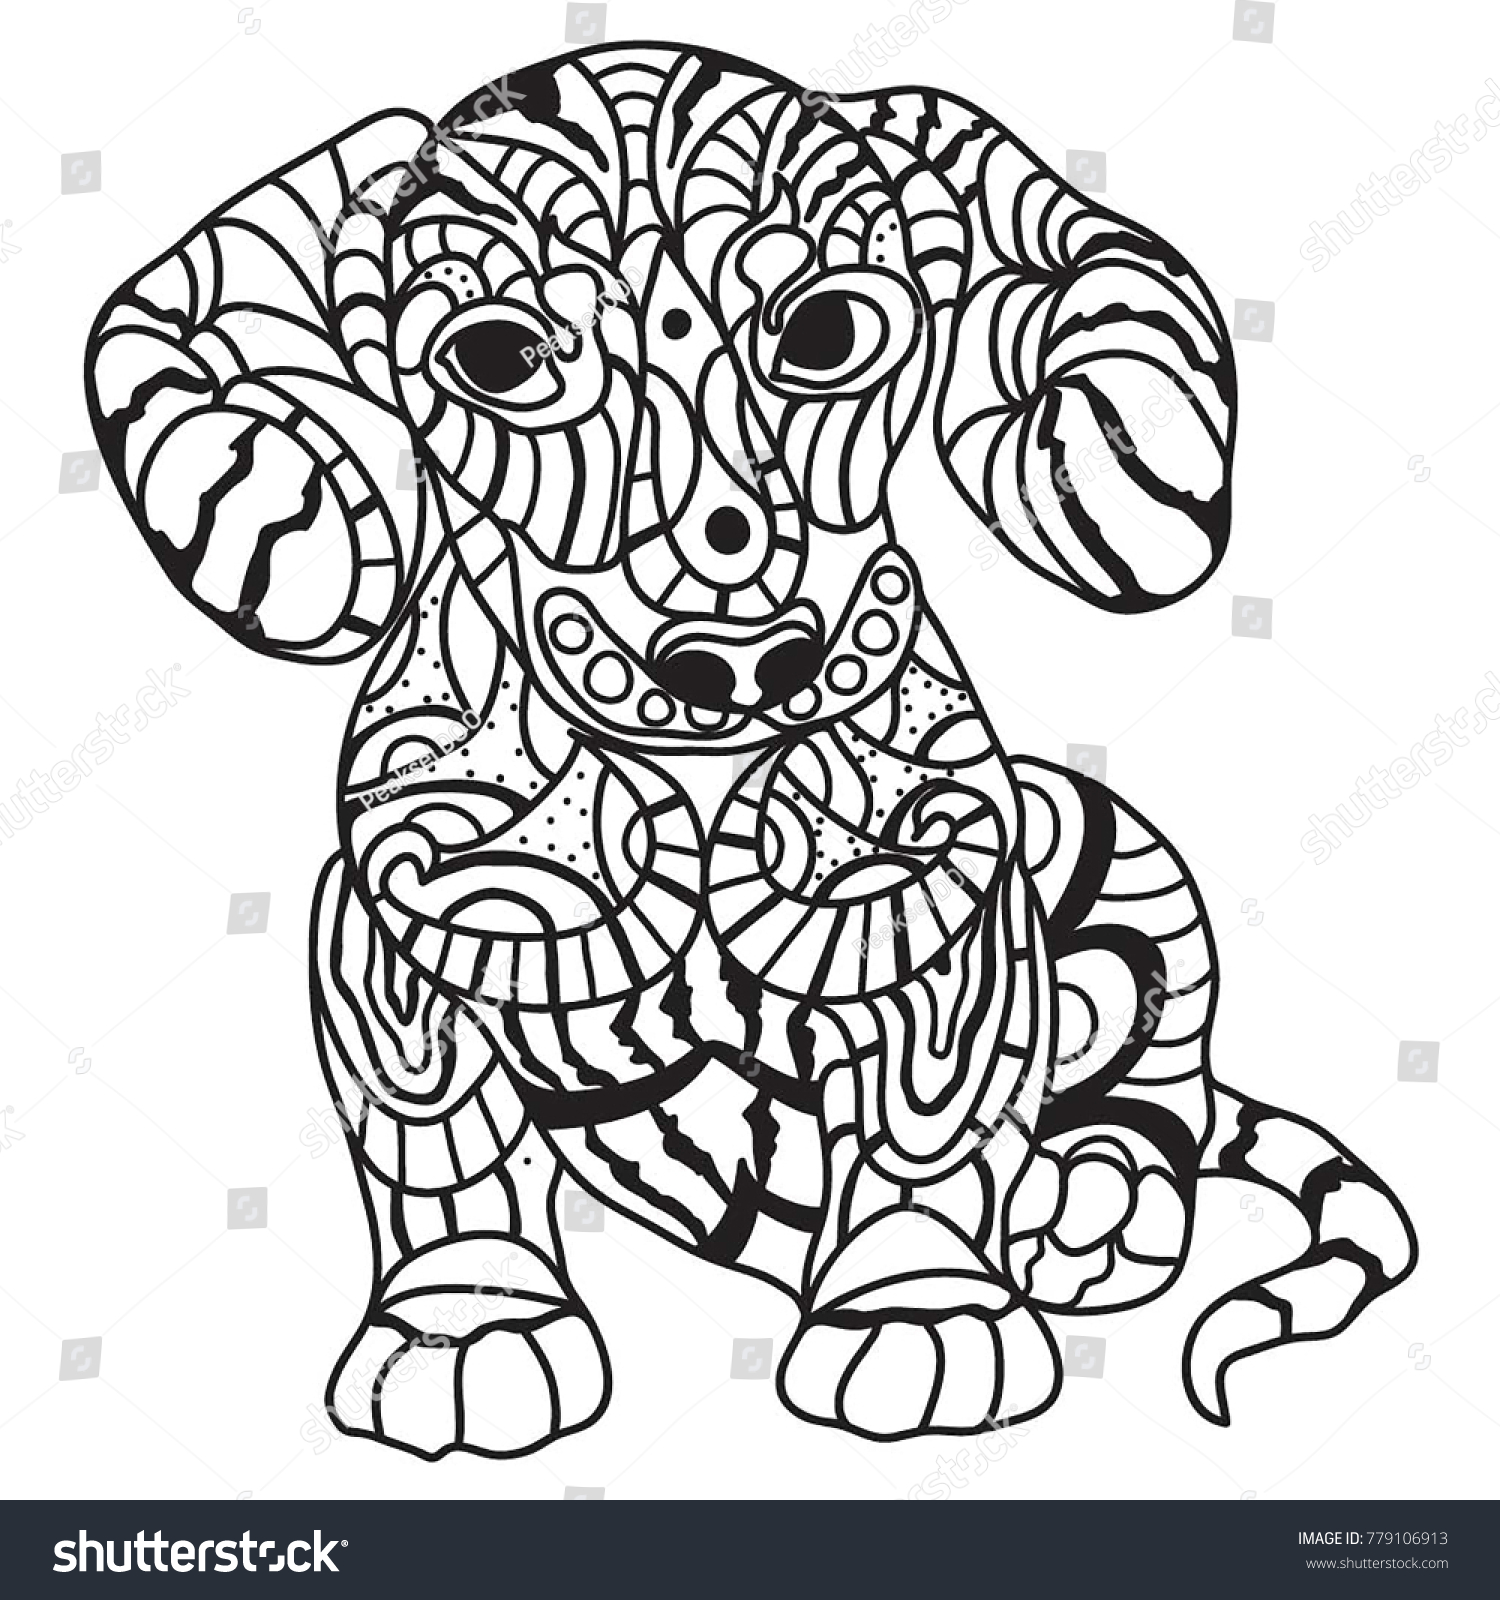 Puppy Dog Big Ears Coloring Page Stock Illustration 779106913